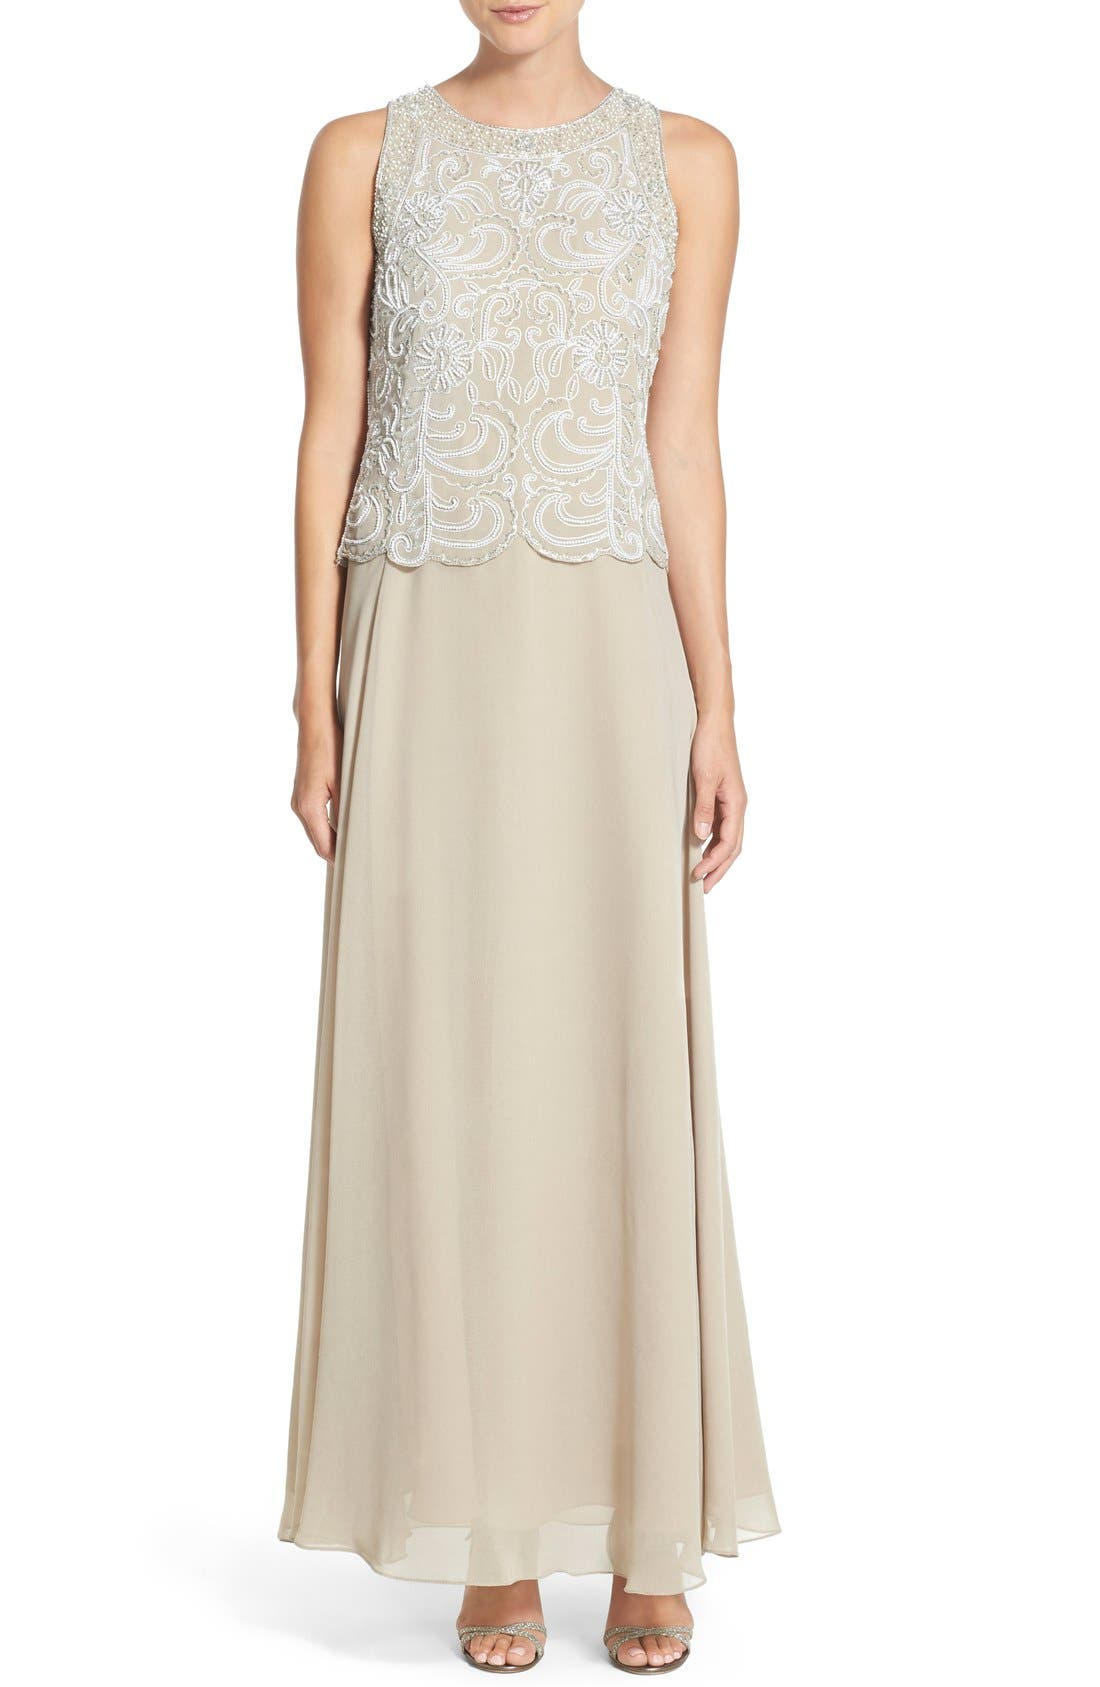 J KARA,                             Embellished Chiffon A-Line Gown with Shawl,                             Alternate thumbnail 3, color,                             250